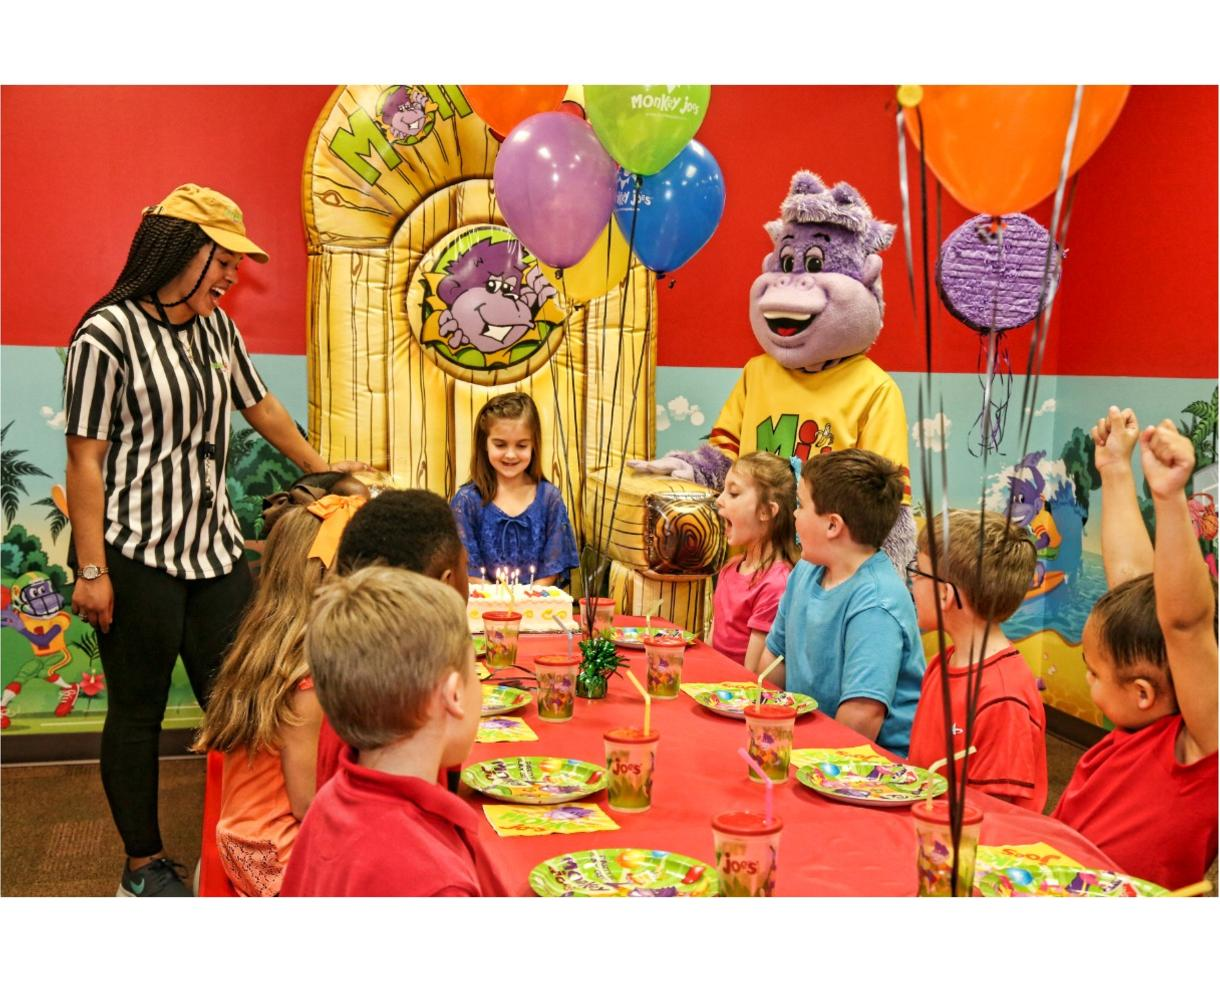 $165 for Monkey Joe's 2-Hour Island Excursion Party Package for Up to 8 Kids, Valid Monday-Thursday - Germantown (50% Off)